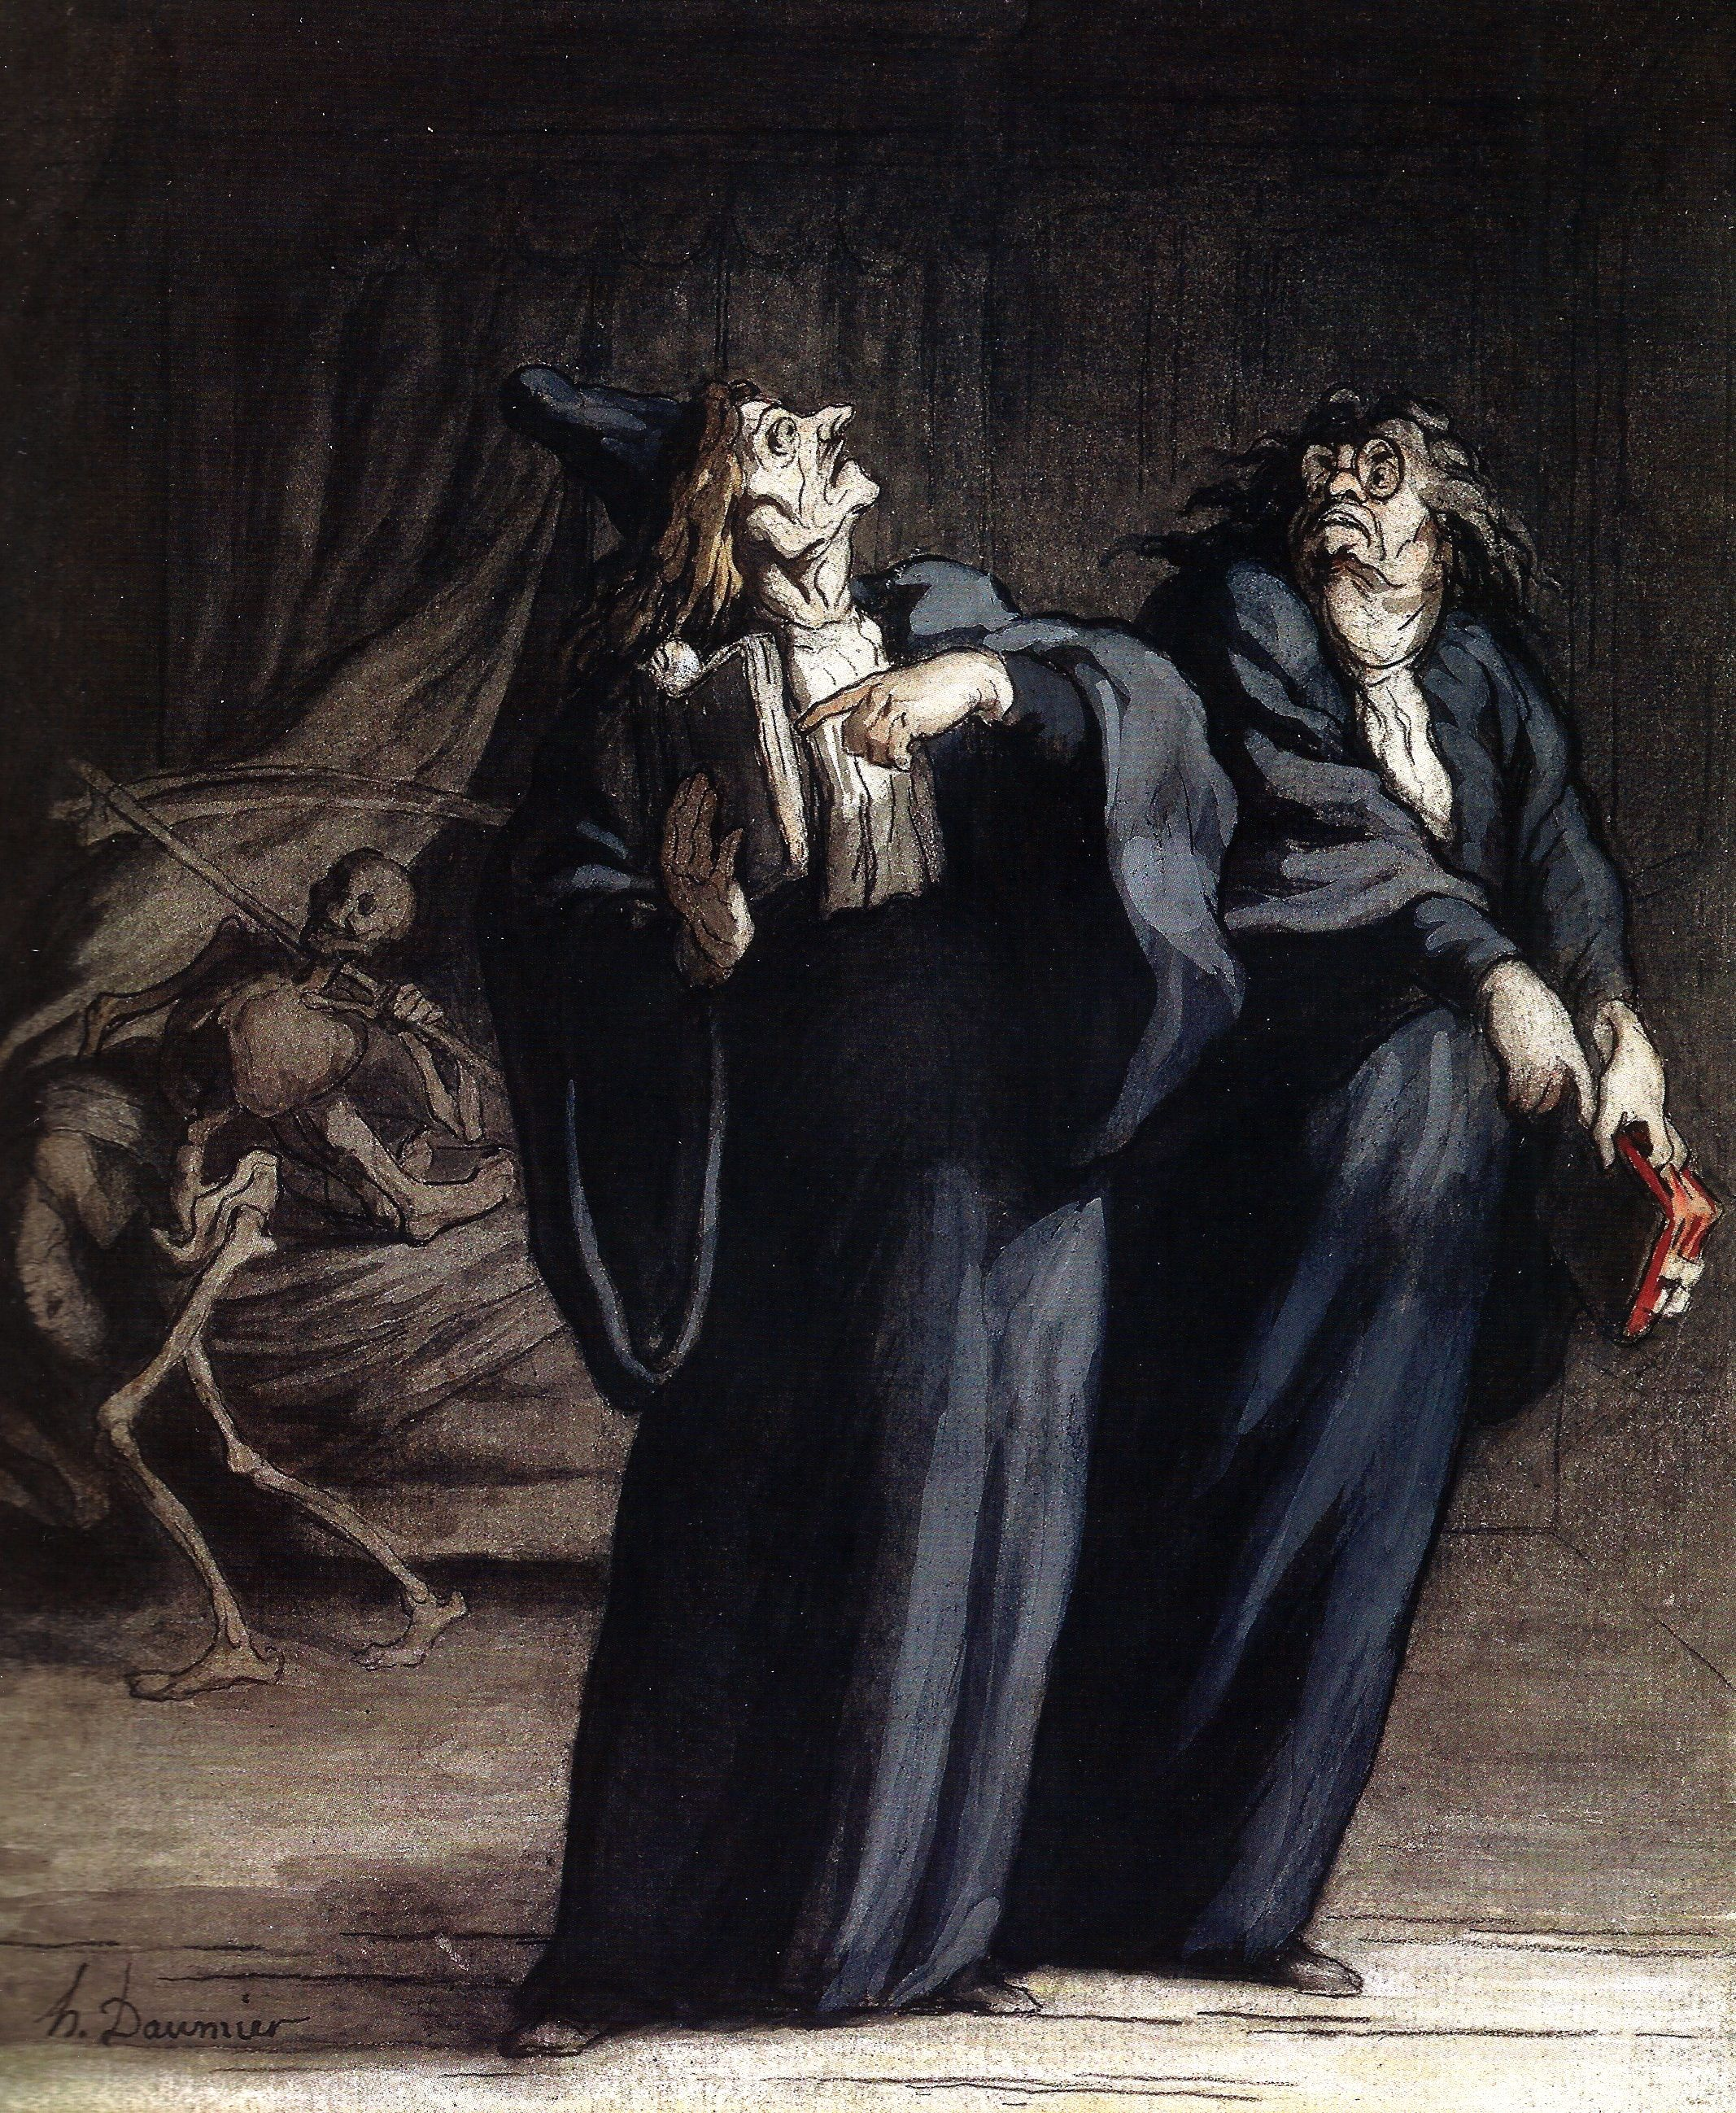 The Two Doctors and Death : Honore Daumier : Realism : allegorical painting - Oil Painting Reproductions Caricatures, Art Of Noise, Honore Daumier, Second Doctor, Reproduction, Art Database, Wood Engraving, Illustrations, Memento Mori